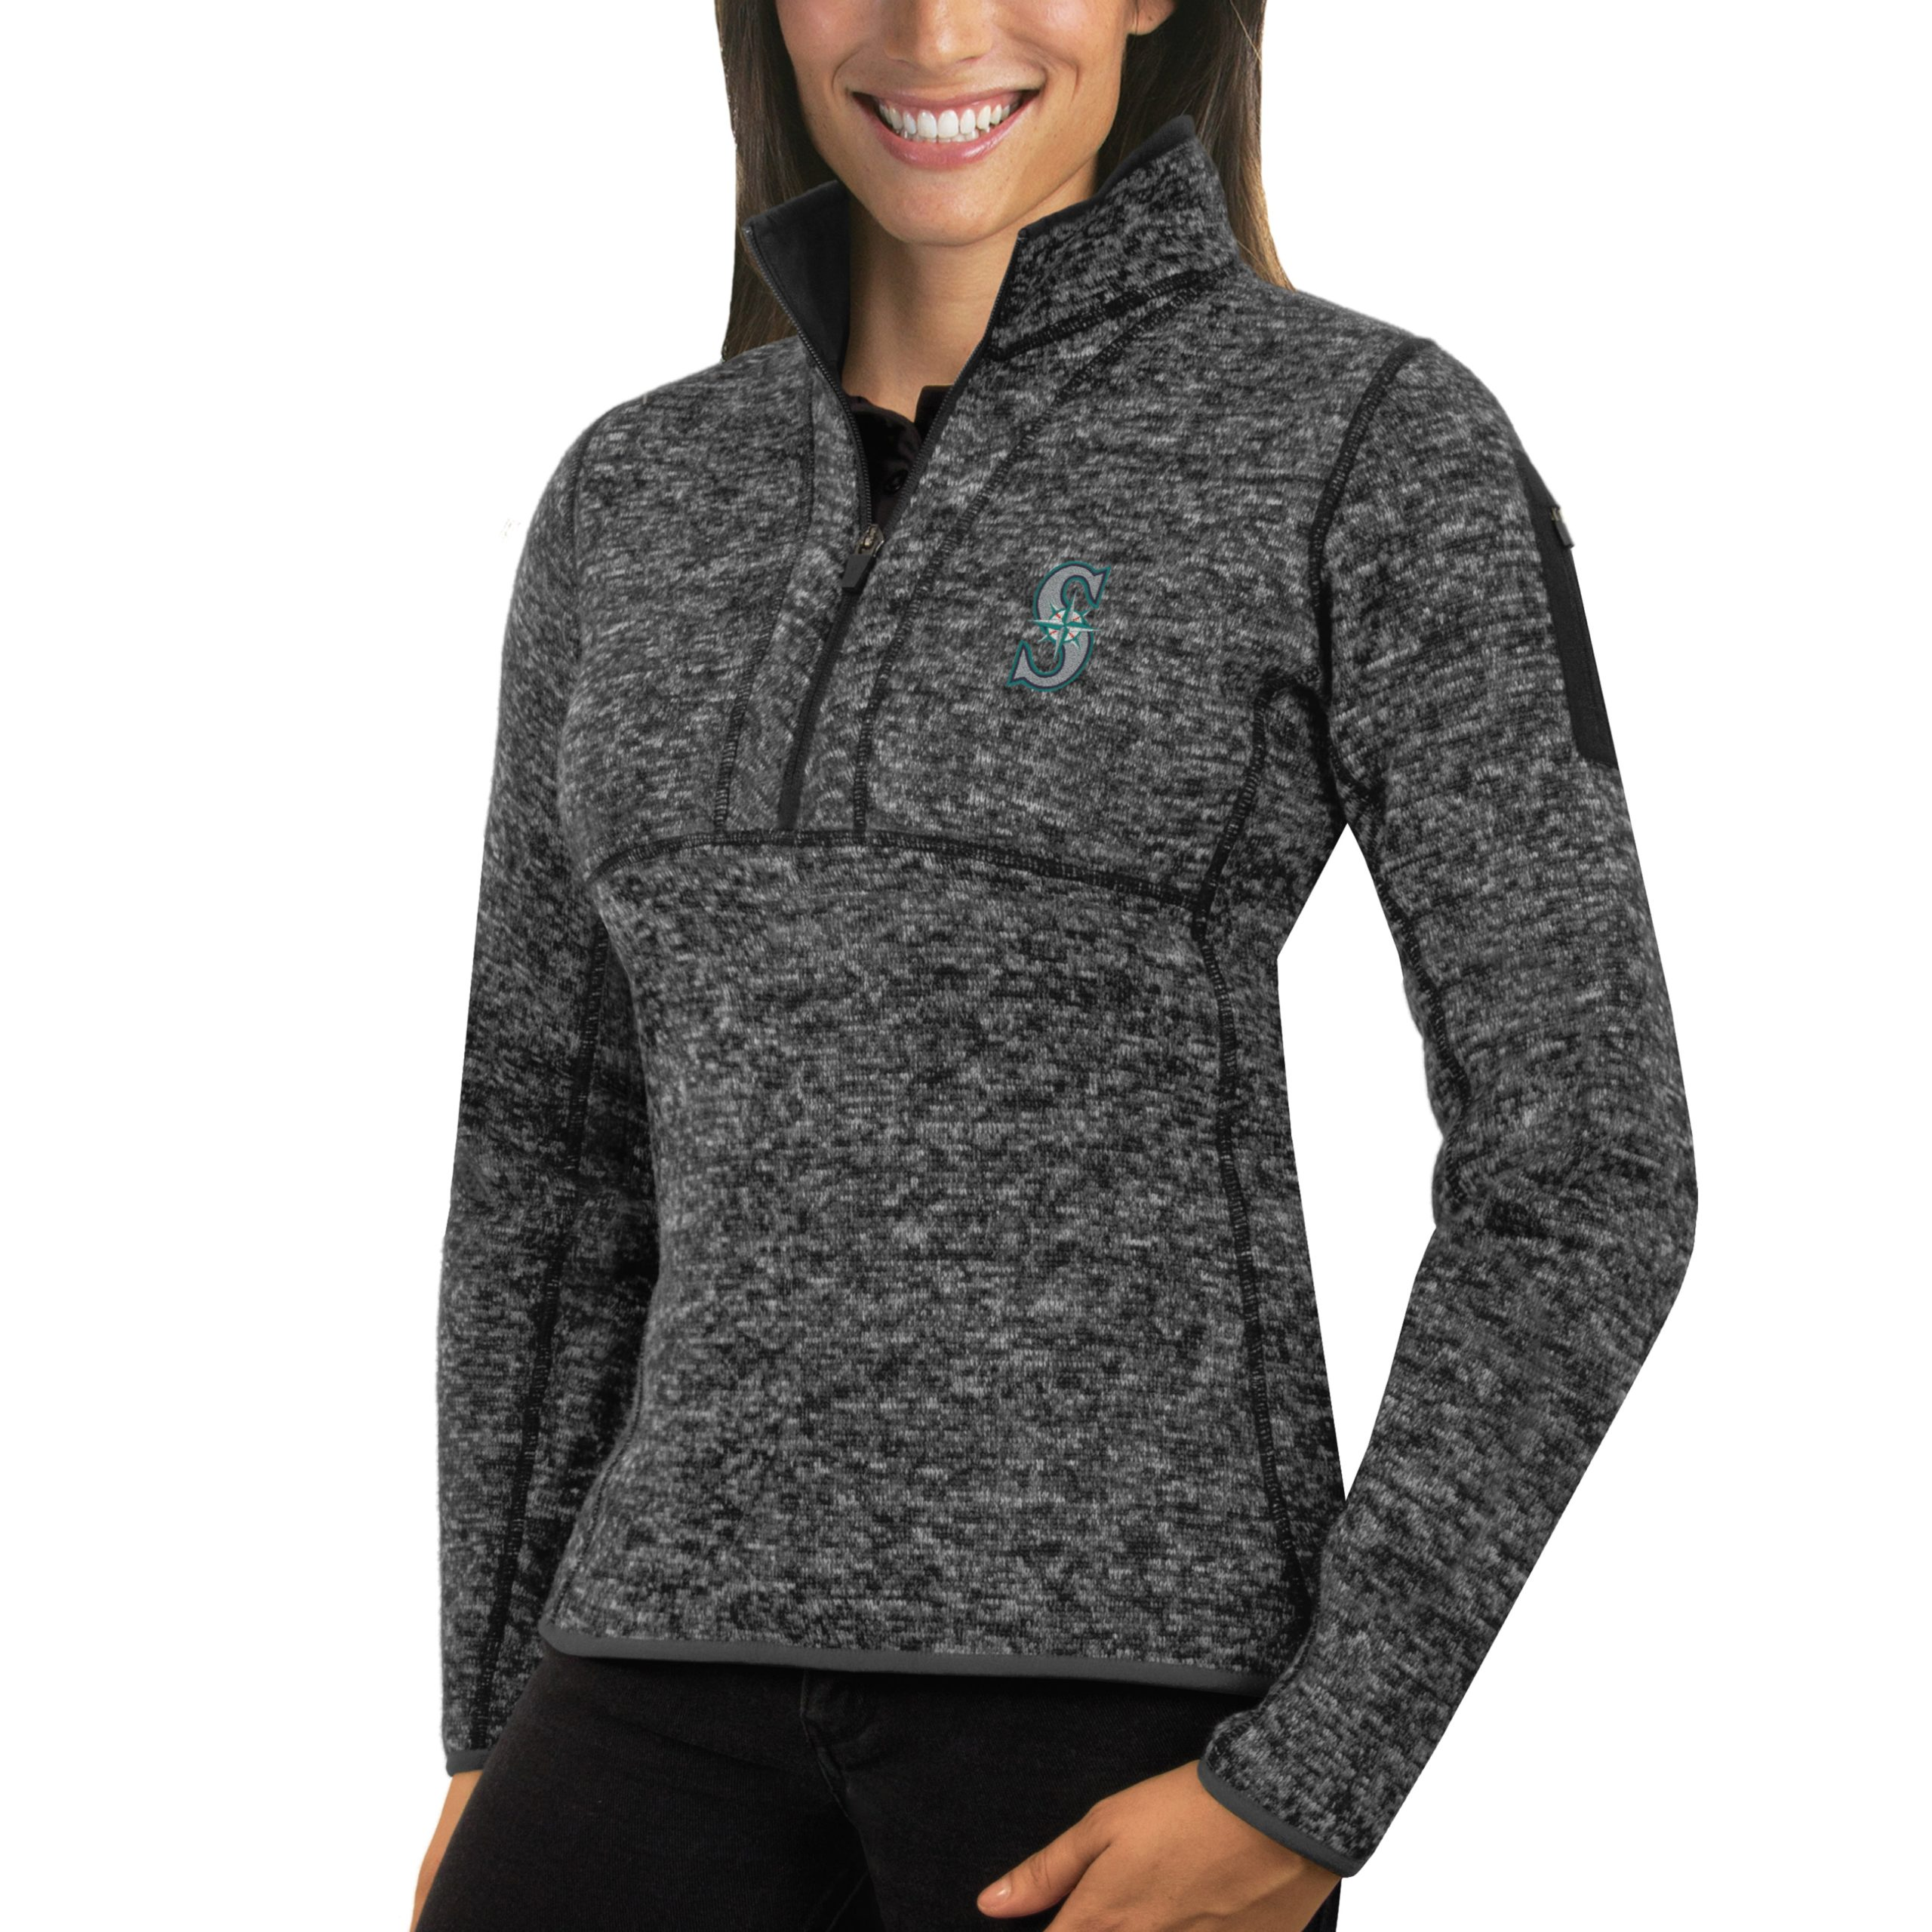 Seattle Mariners Antigua Women's Fortune Half-Zip Pullover Sweater - Heathered Charcoal